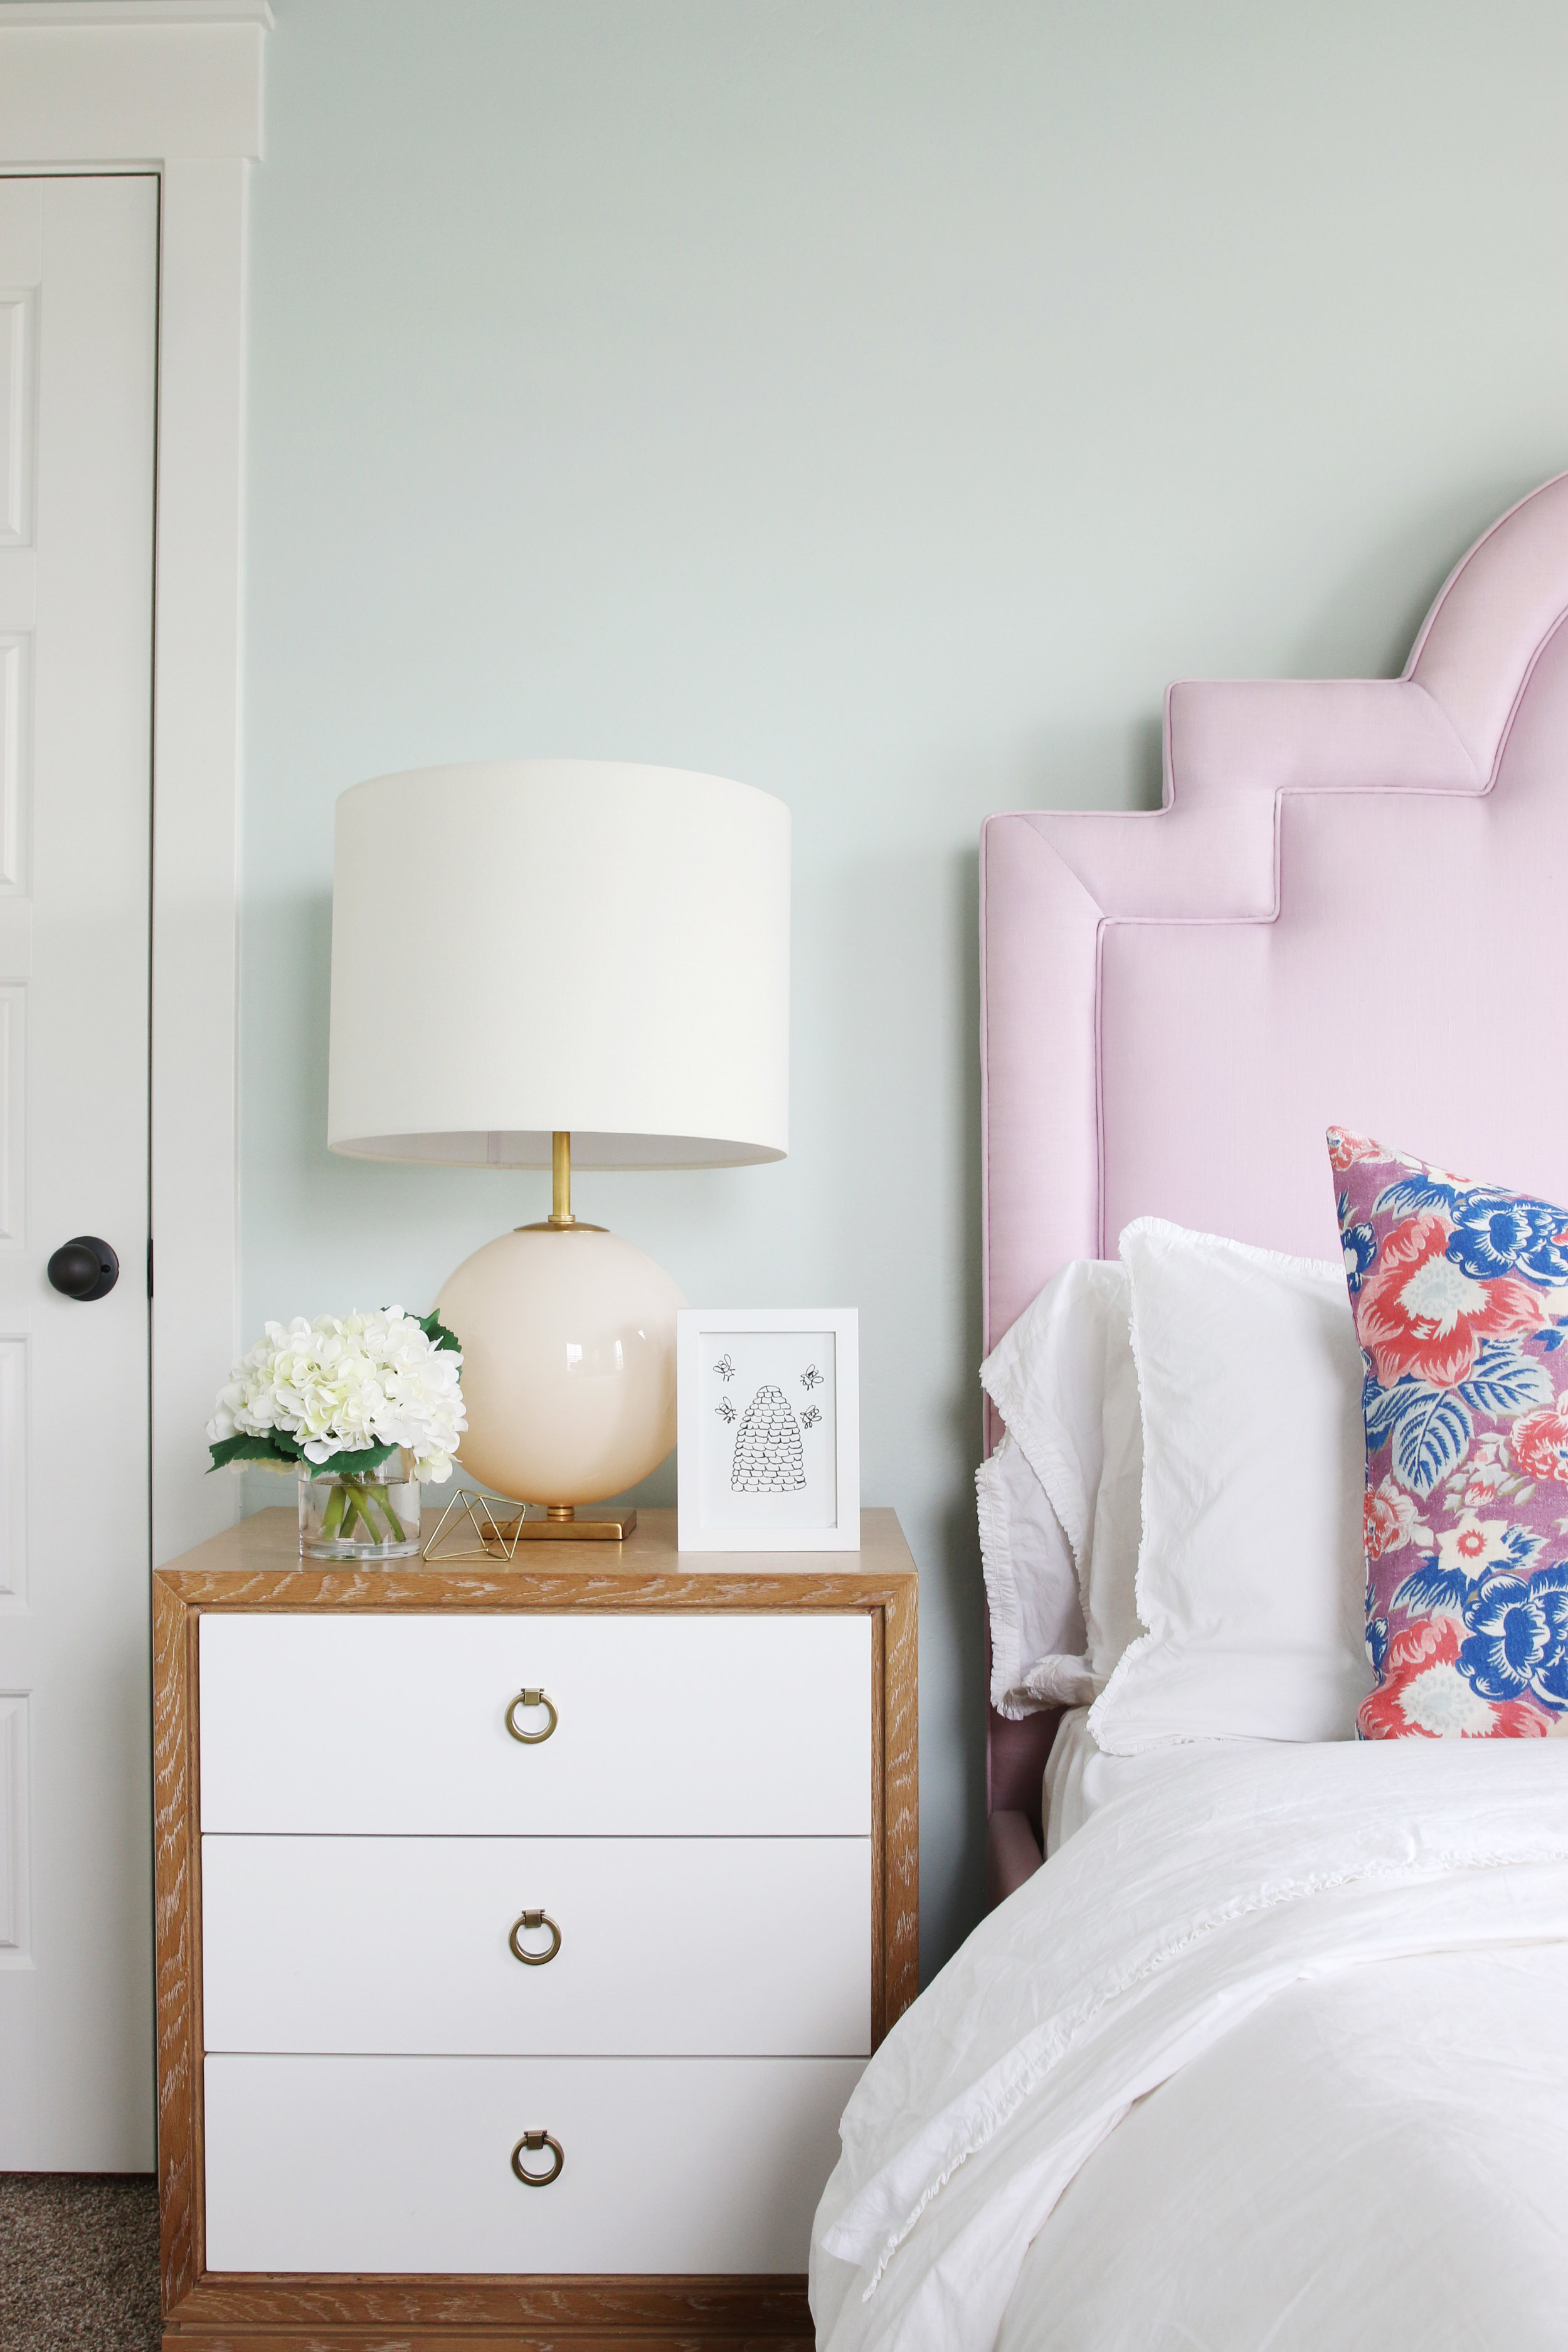 re s some apartment design images college pearls using gingerapt for of that inspiration our bedroom here kate the spade inspired we pink passion